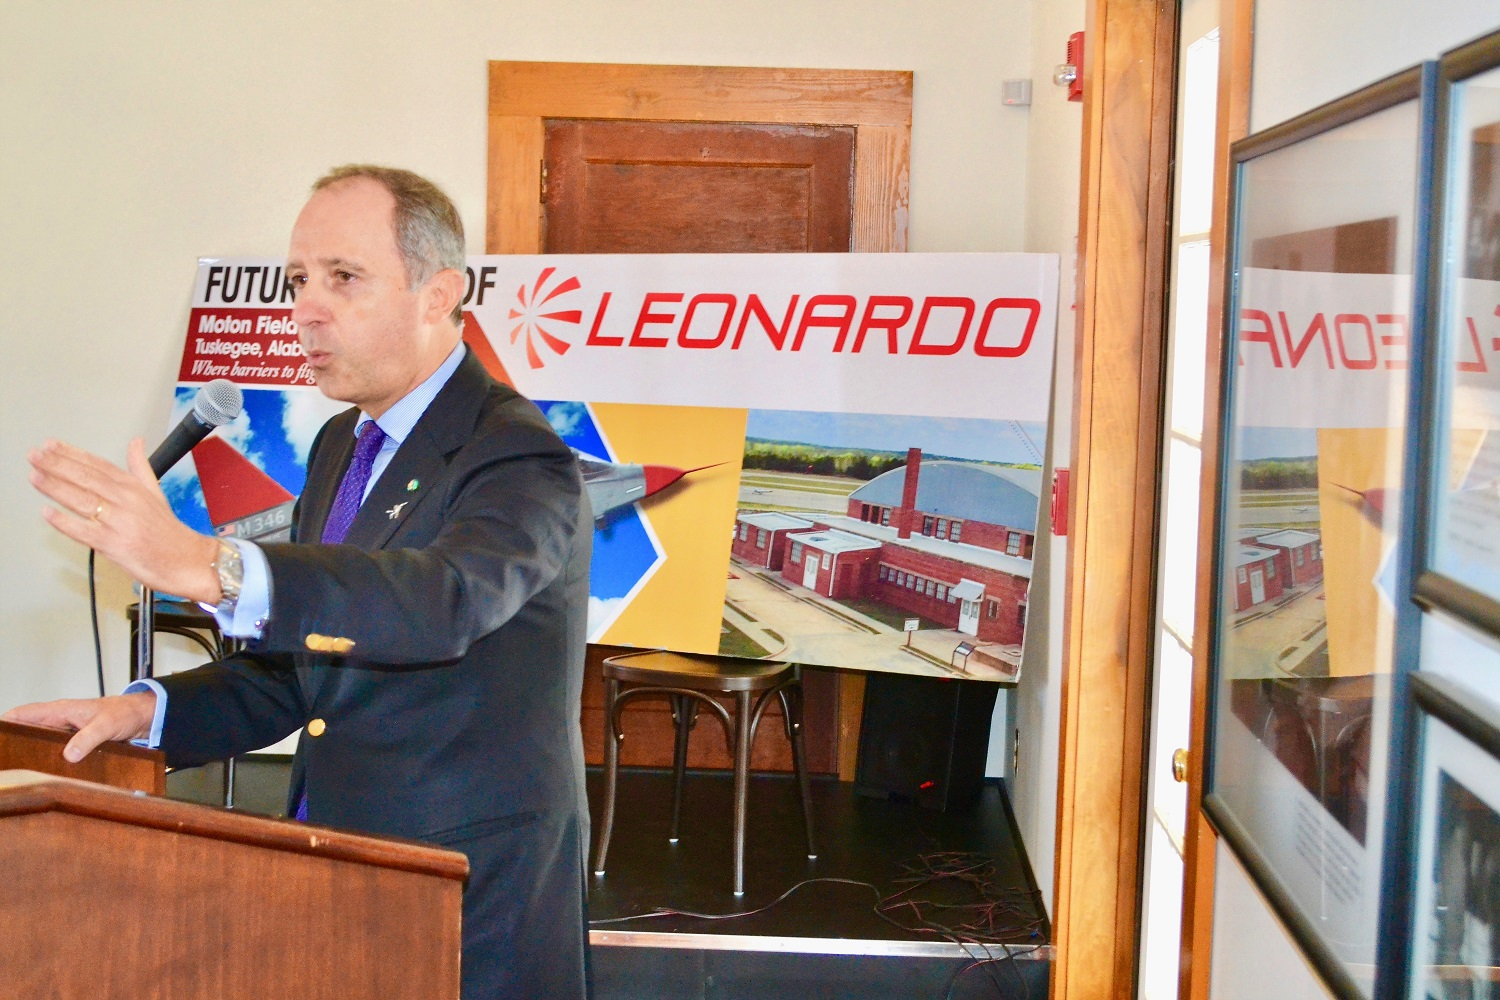 Italian Ambassador Armando Varricchio speaks at a community lunch in Tuskegee to support Leonardo's T-100 jet trainer project. (contributed)